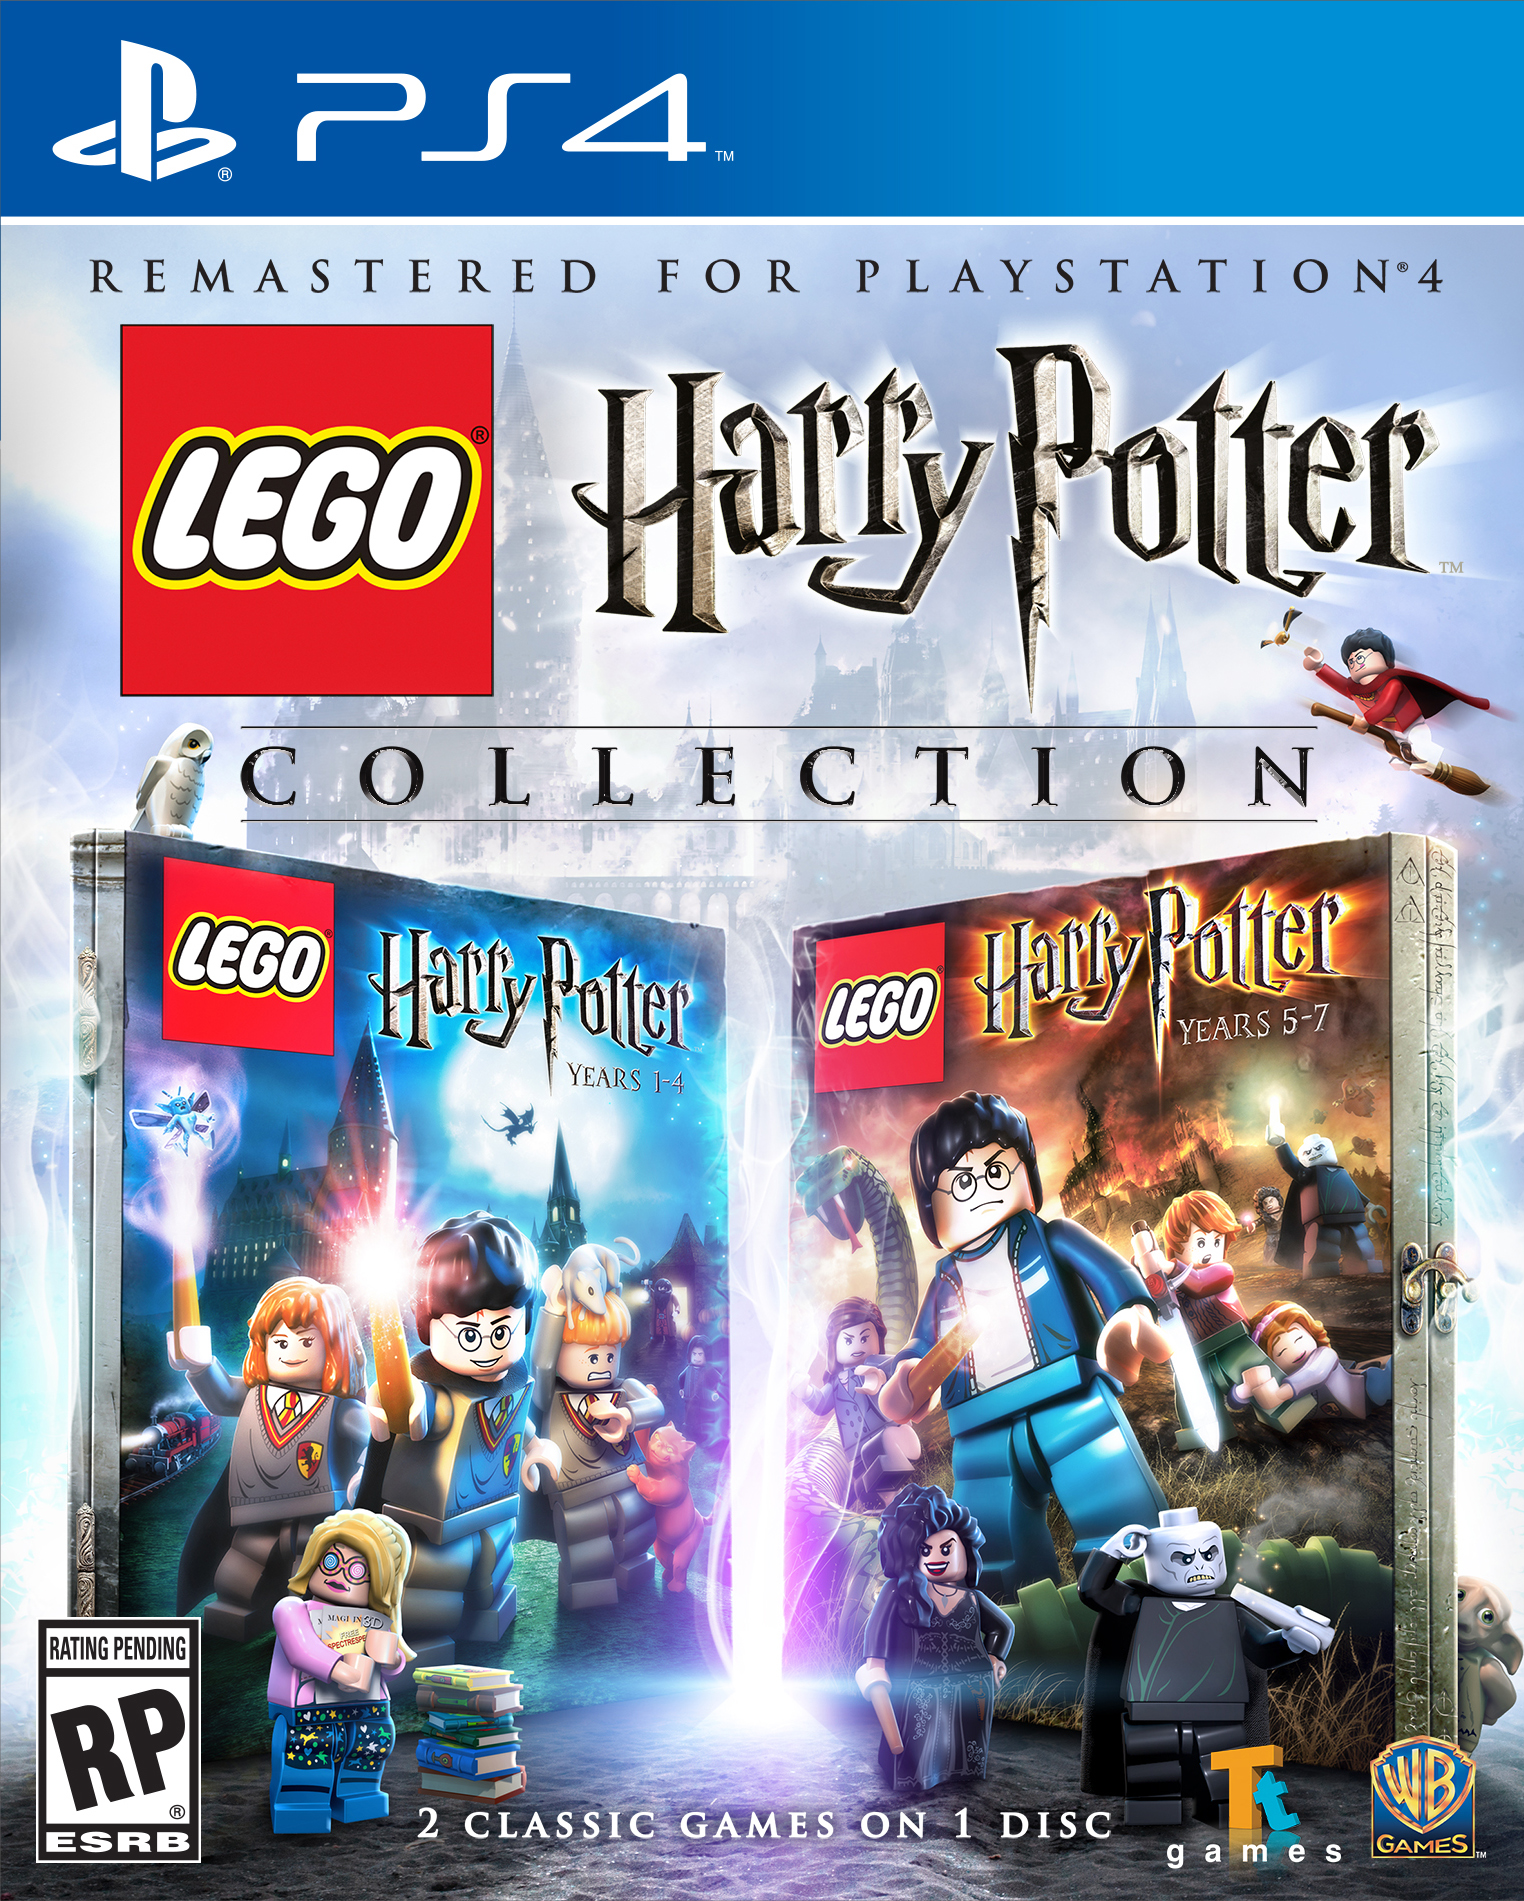 LEGO Harry Potter Collection Announced for PlayStation 4